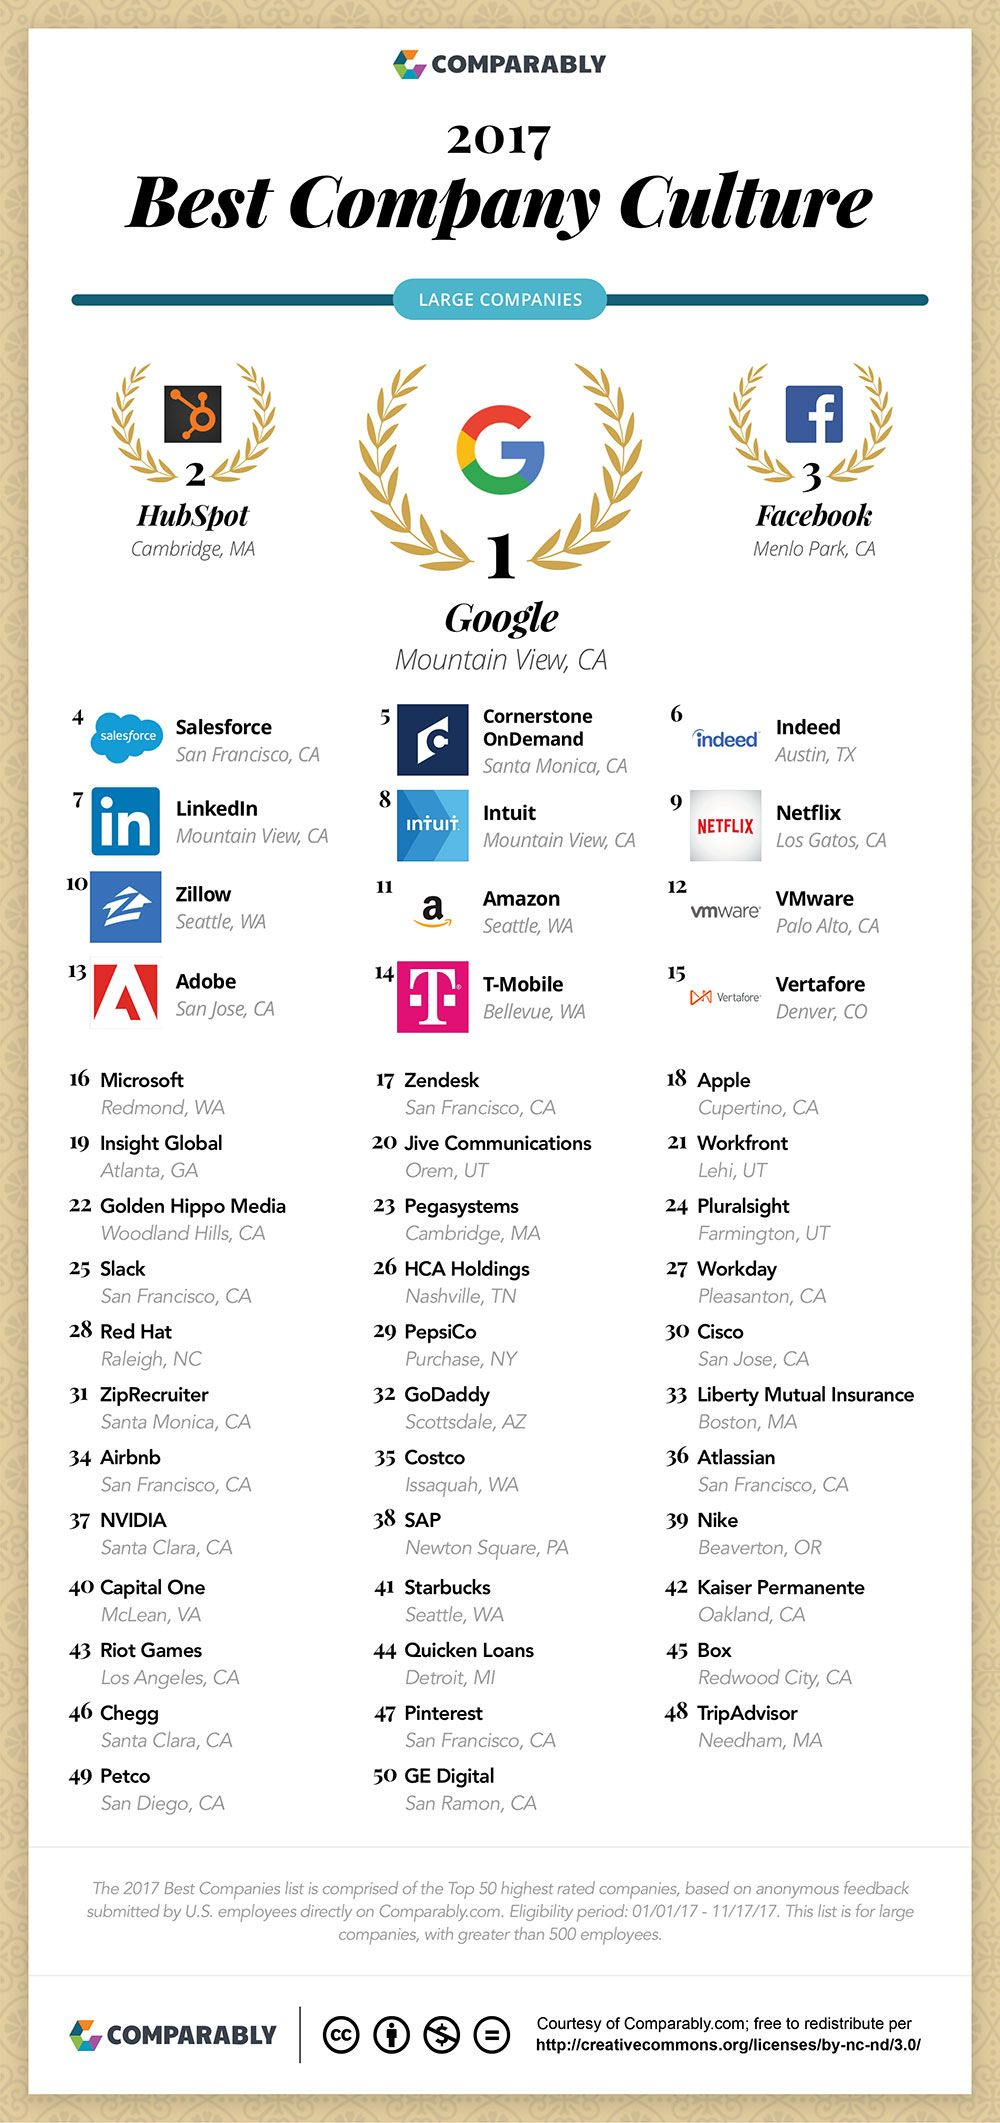 Best Company Culture Who Made The List In 2017 Infographic